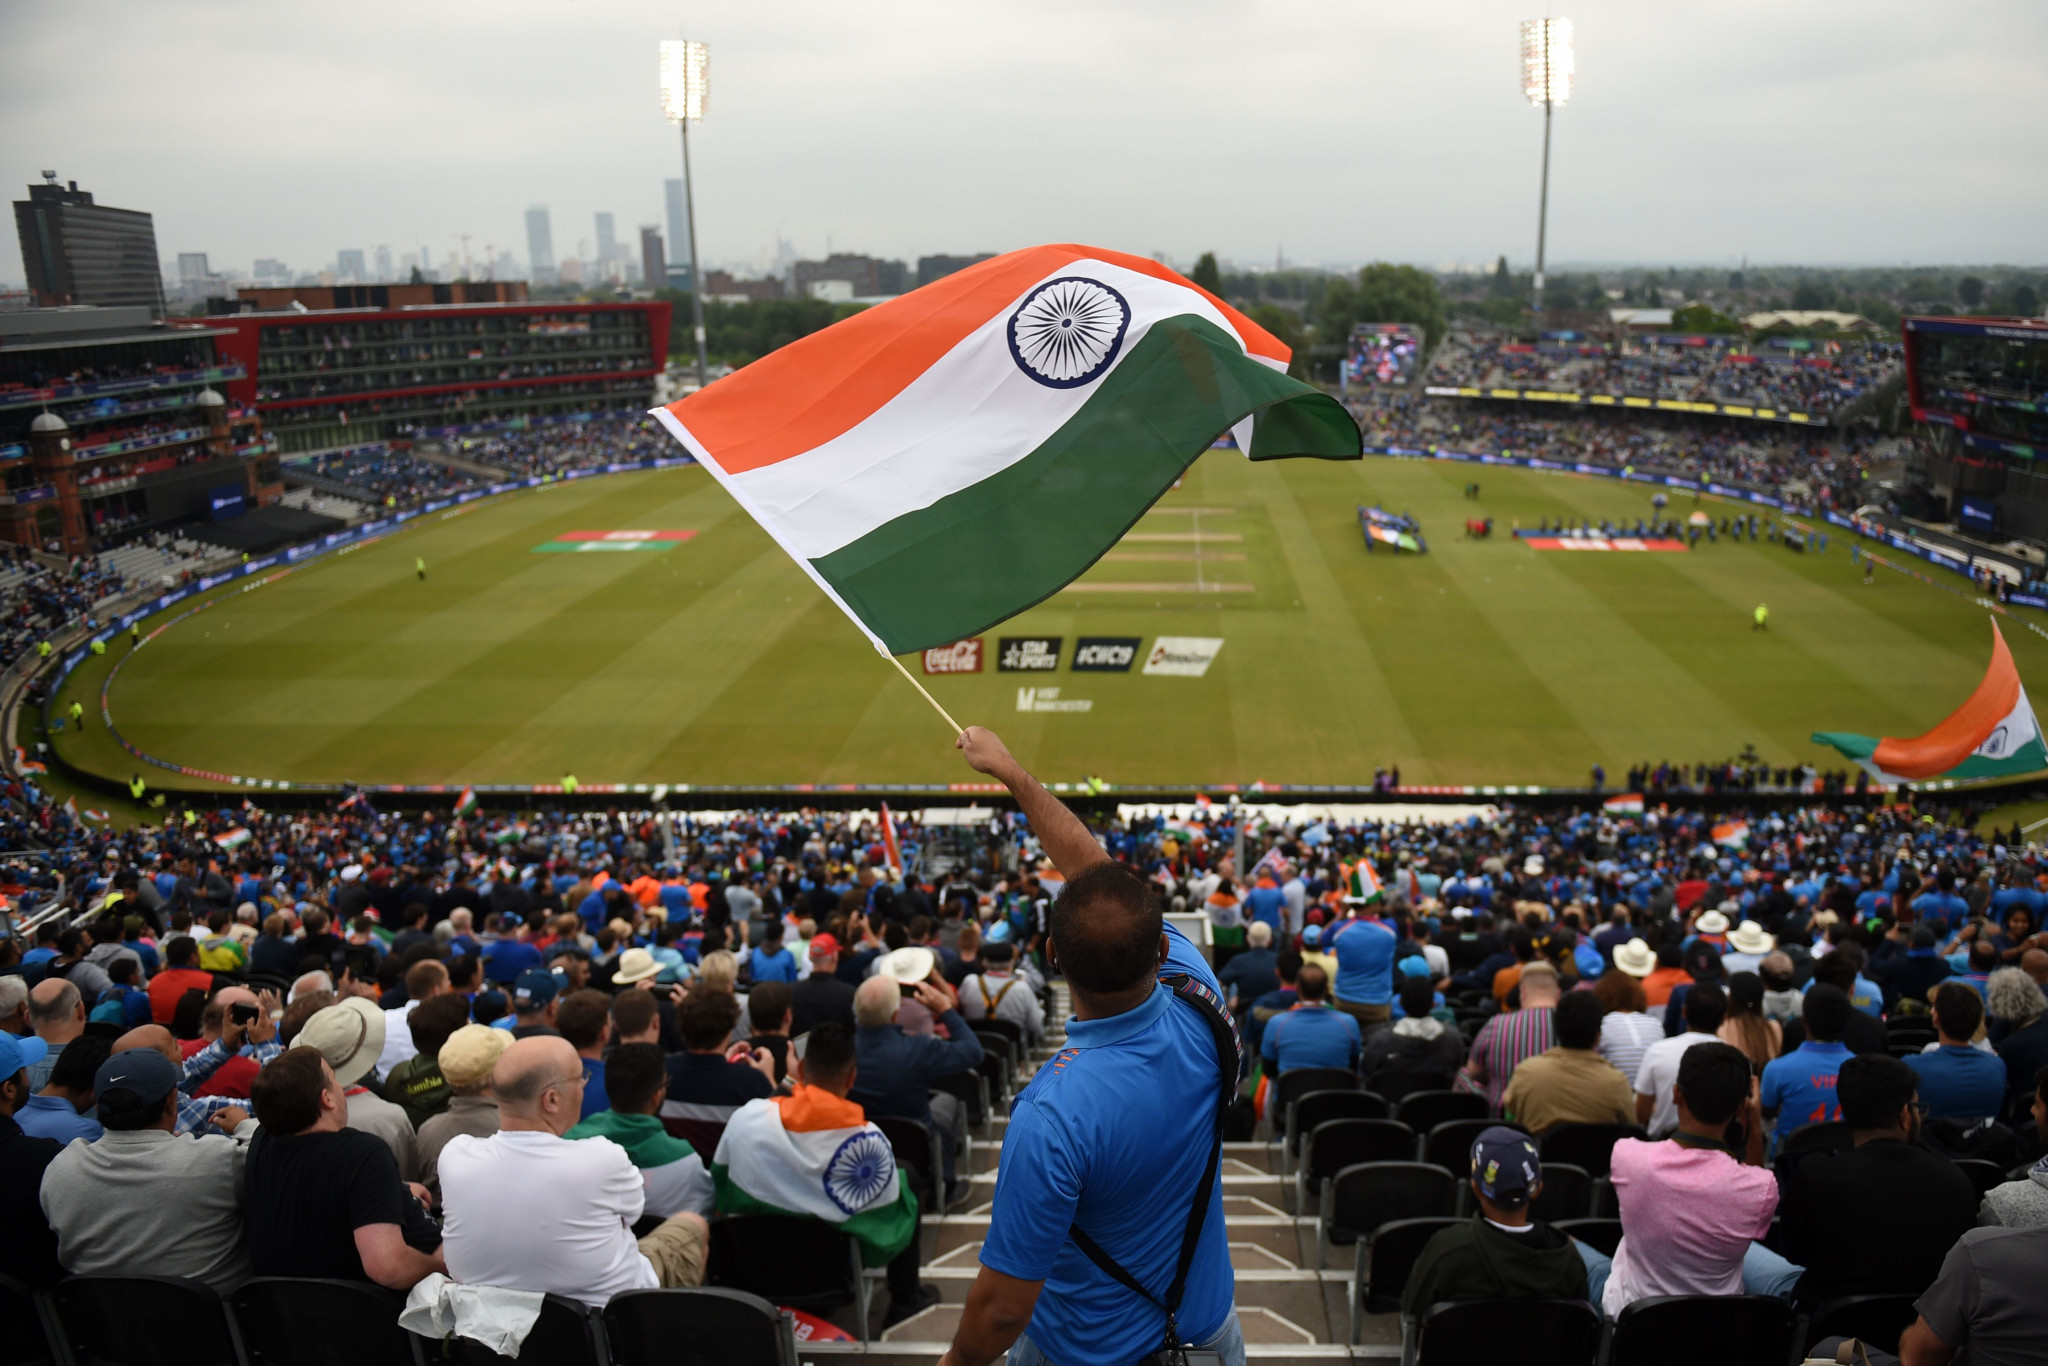 The Board of Control for Cricket in India is the sport's most powerful national governing body ©Getty Images